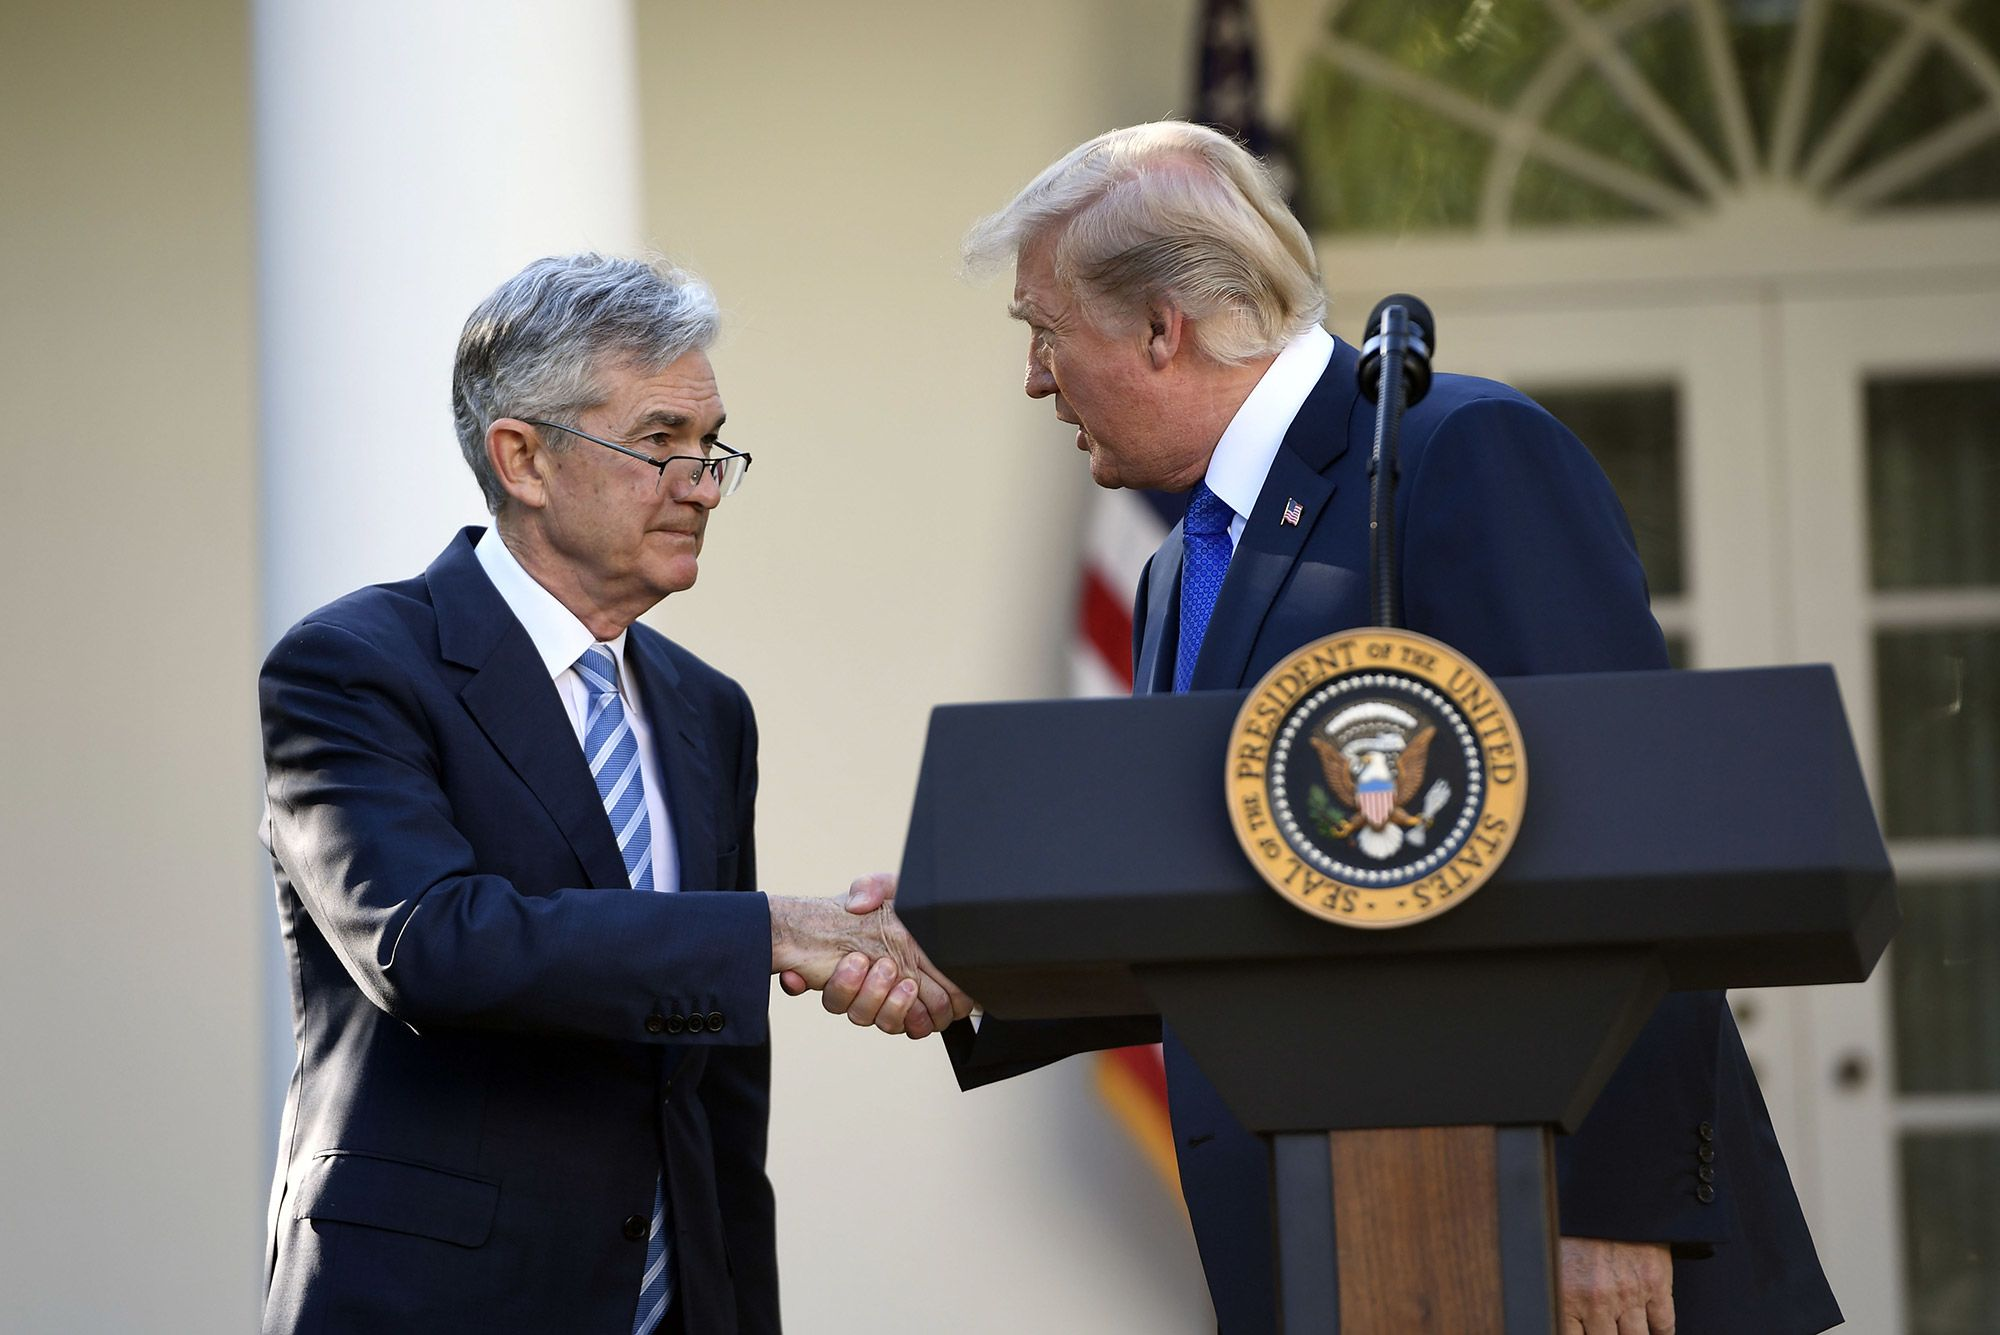 Fed chief Powell has had multiple short phone calls with Trump in 2019